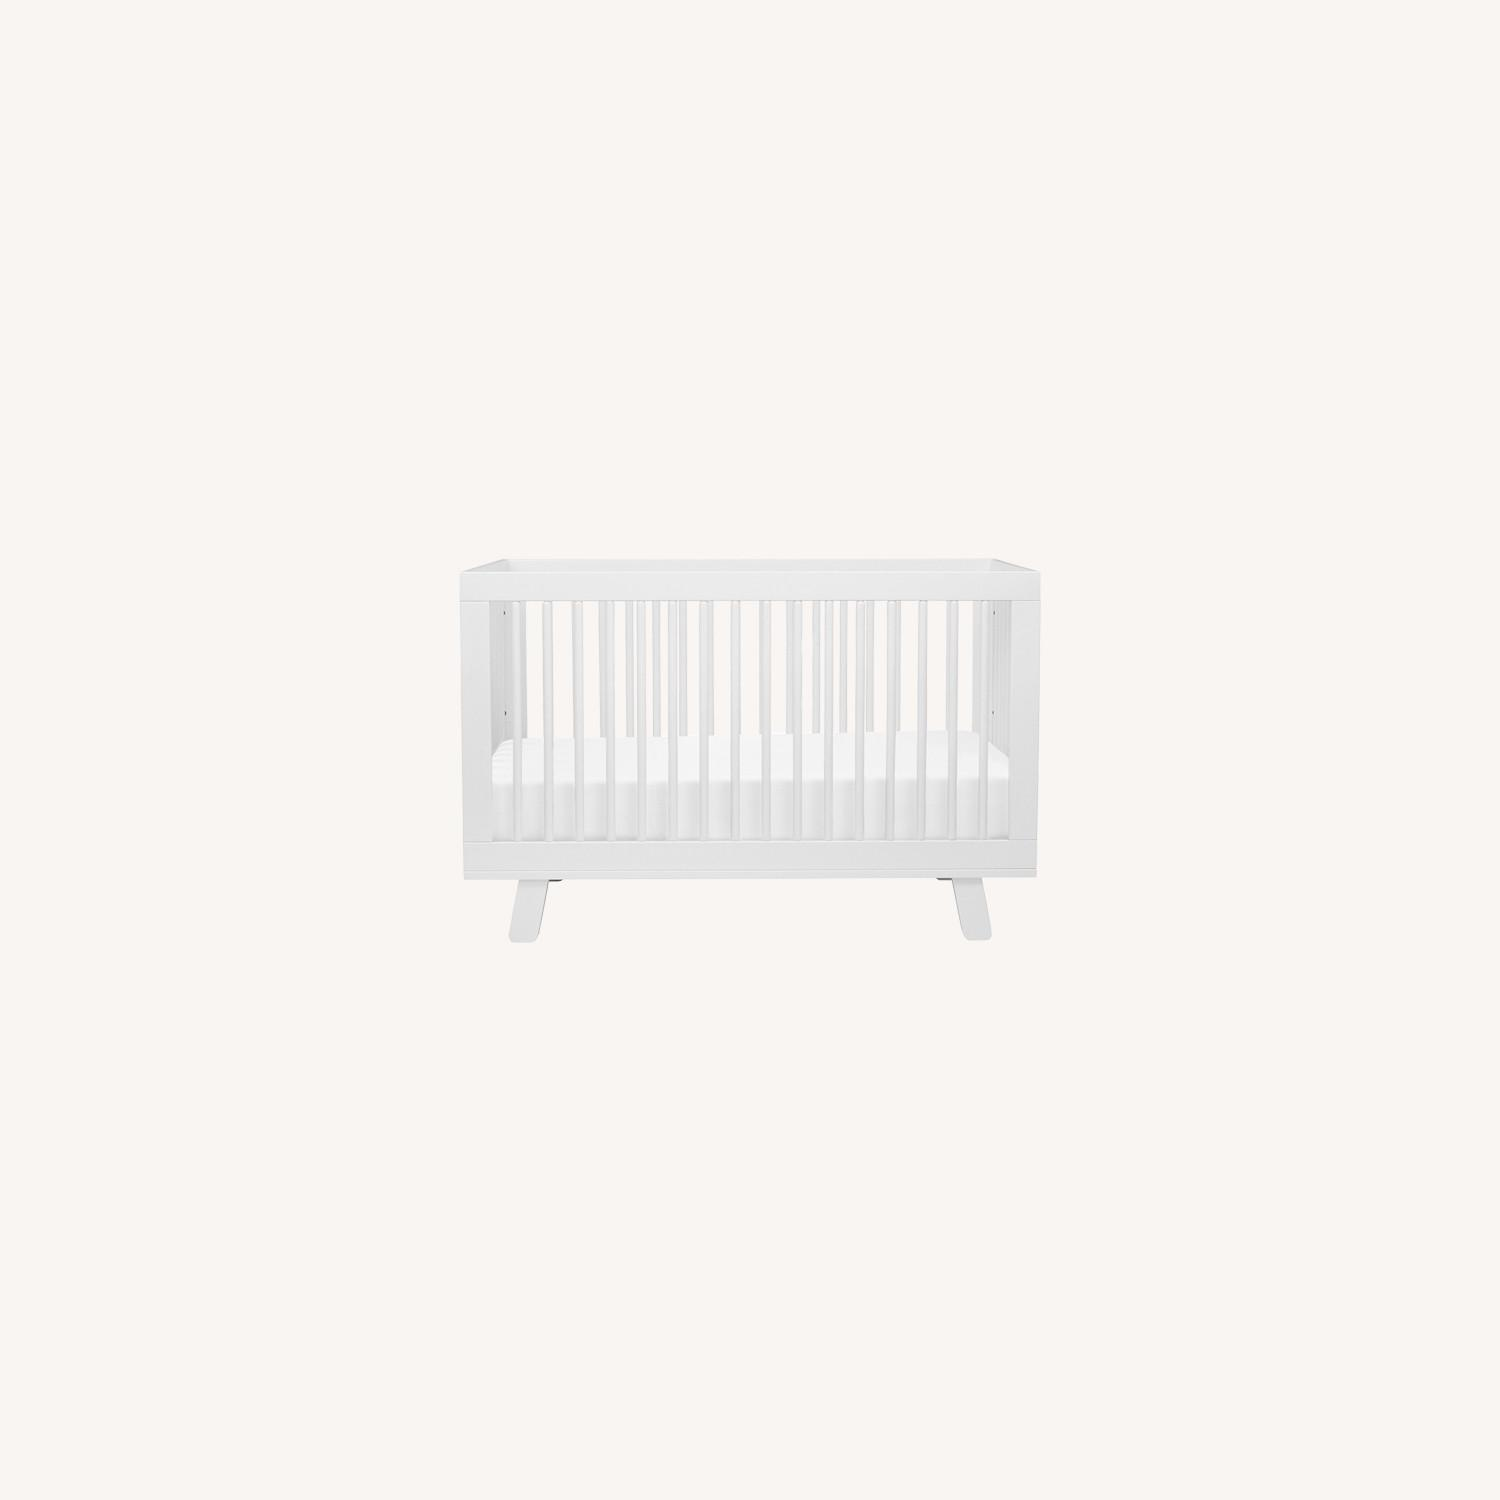 Babyletto Hudson 3-in-1 Convertible Crib in White - image-0